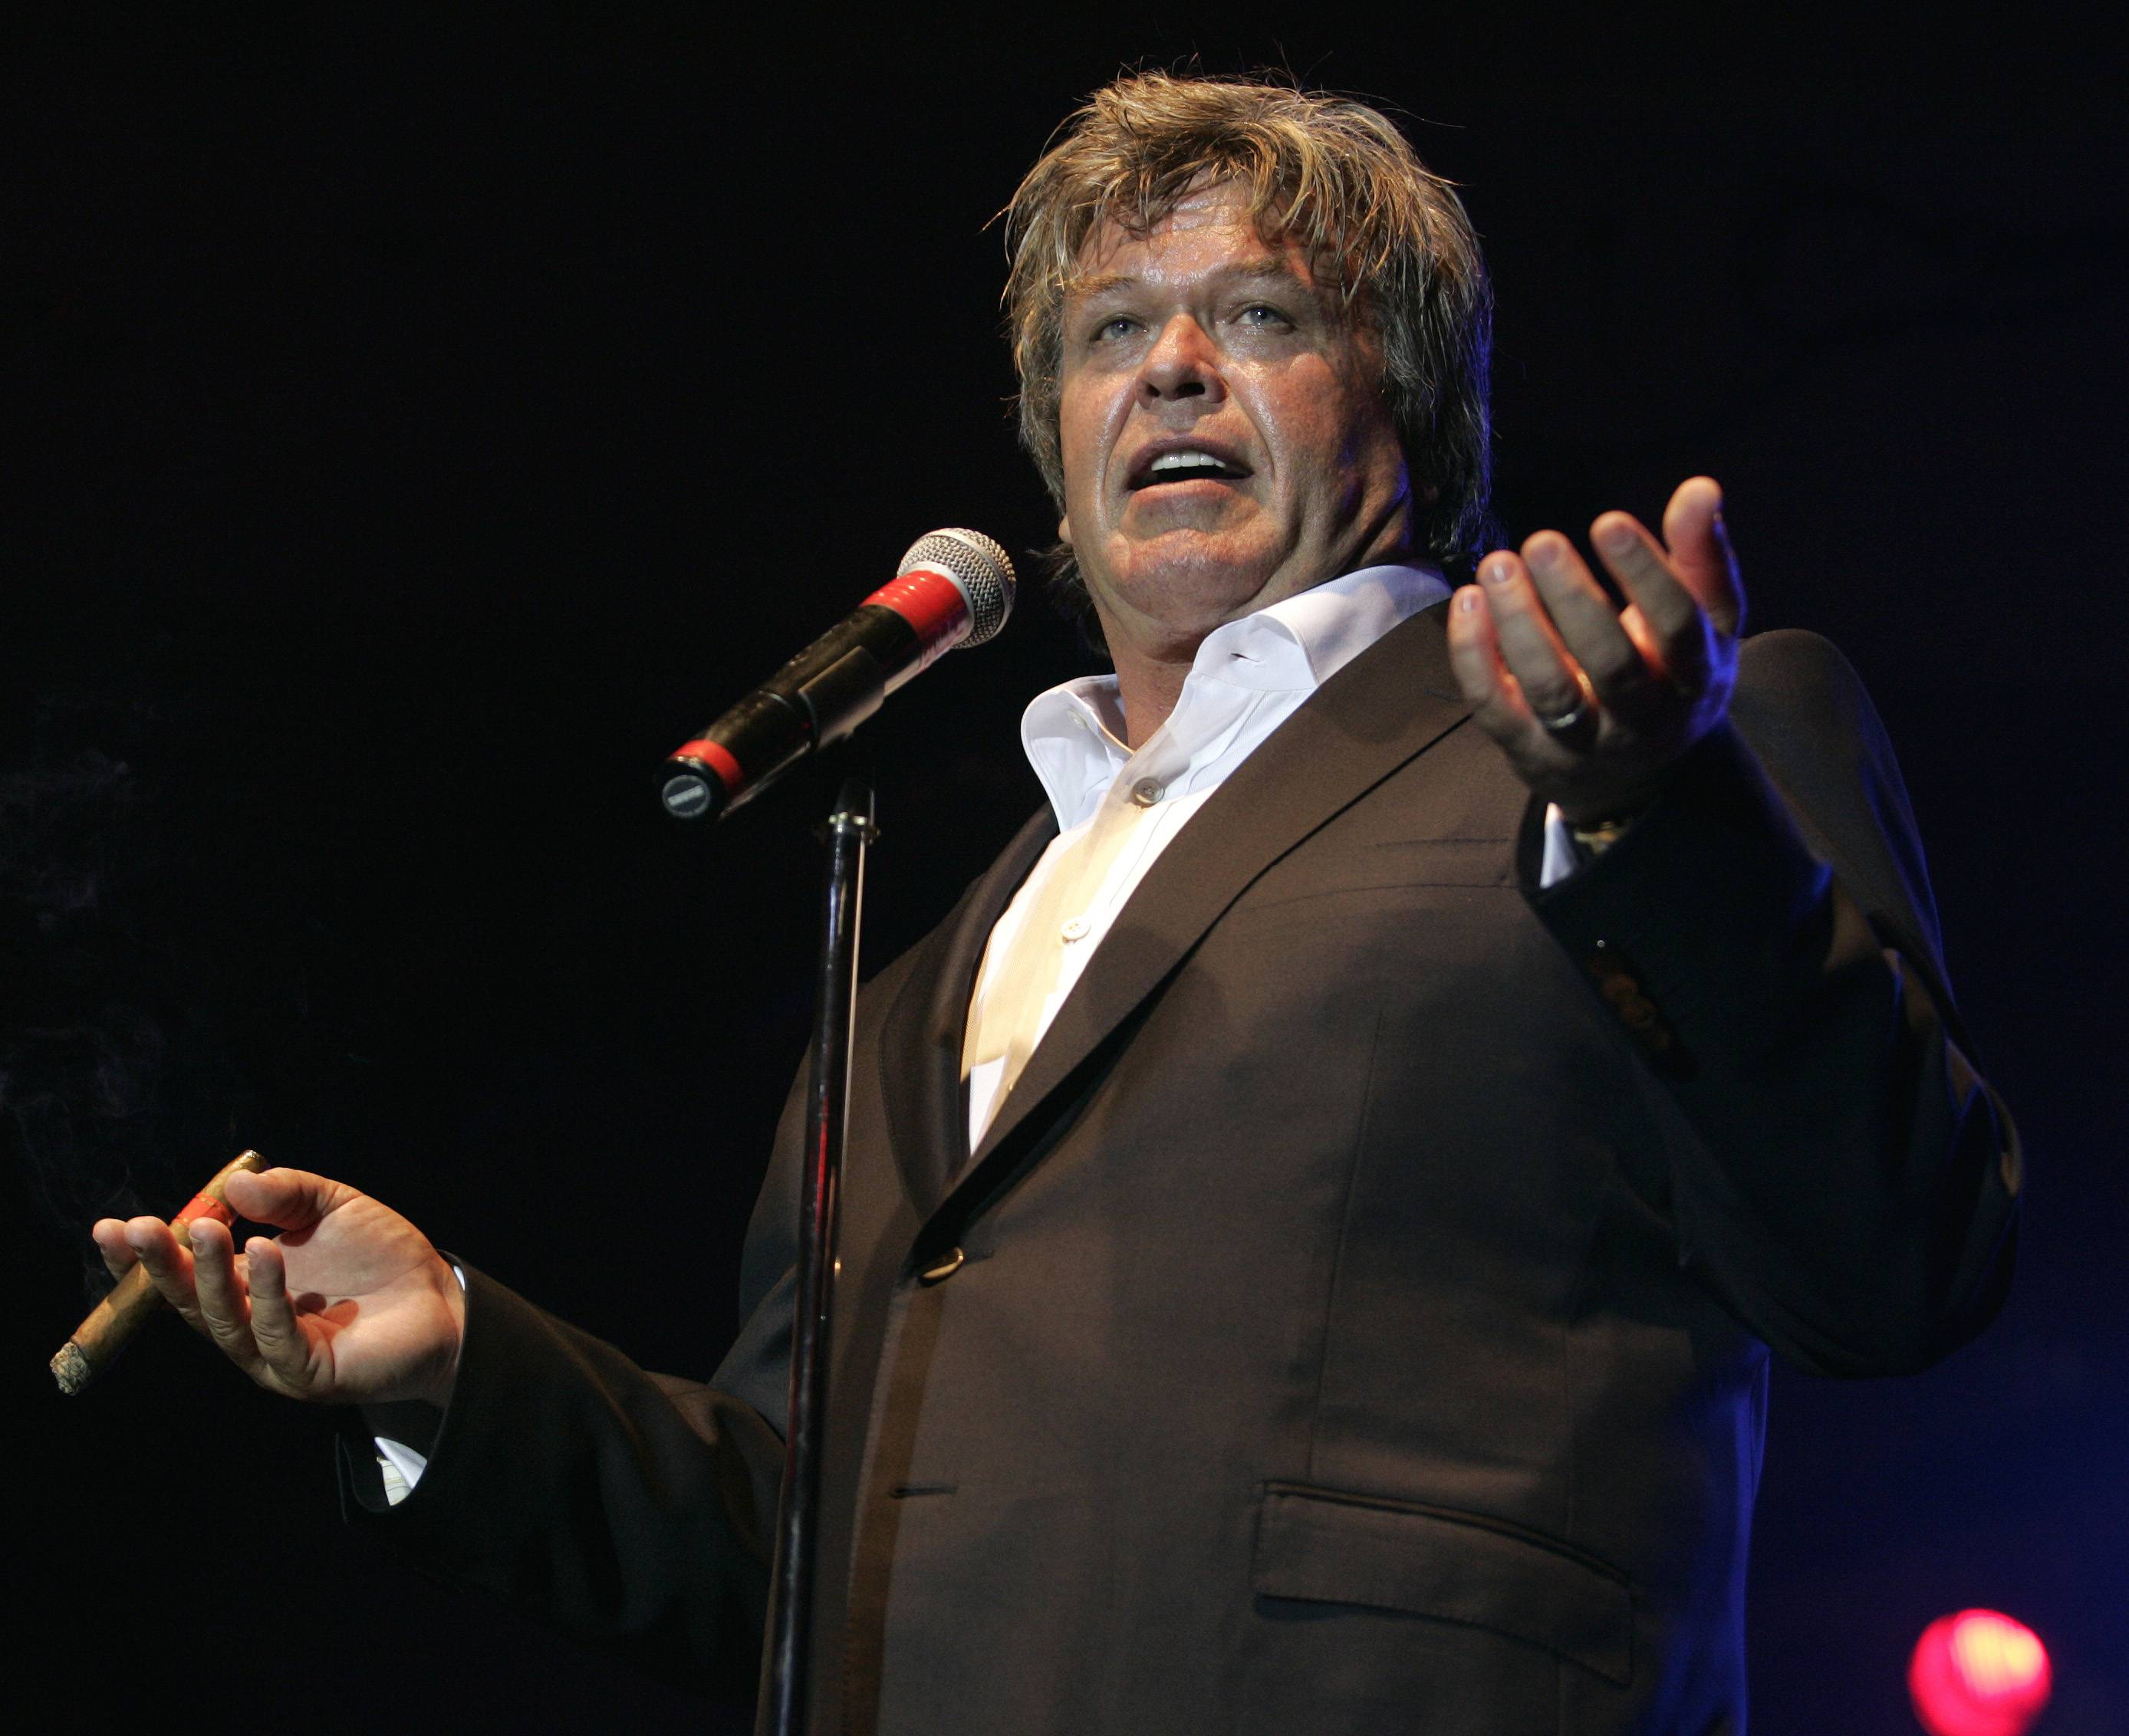 Comedian Ron White performs at the Genesee Theatre in Waukegan on Friday, April 11.